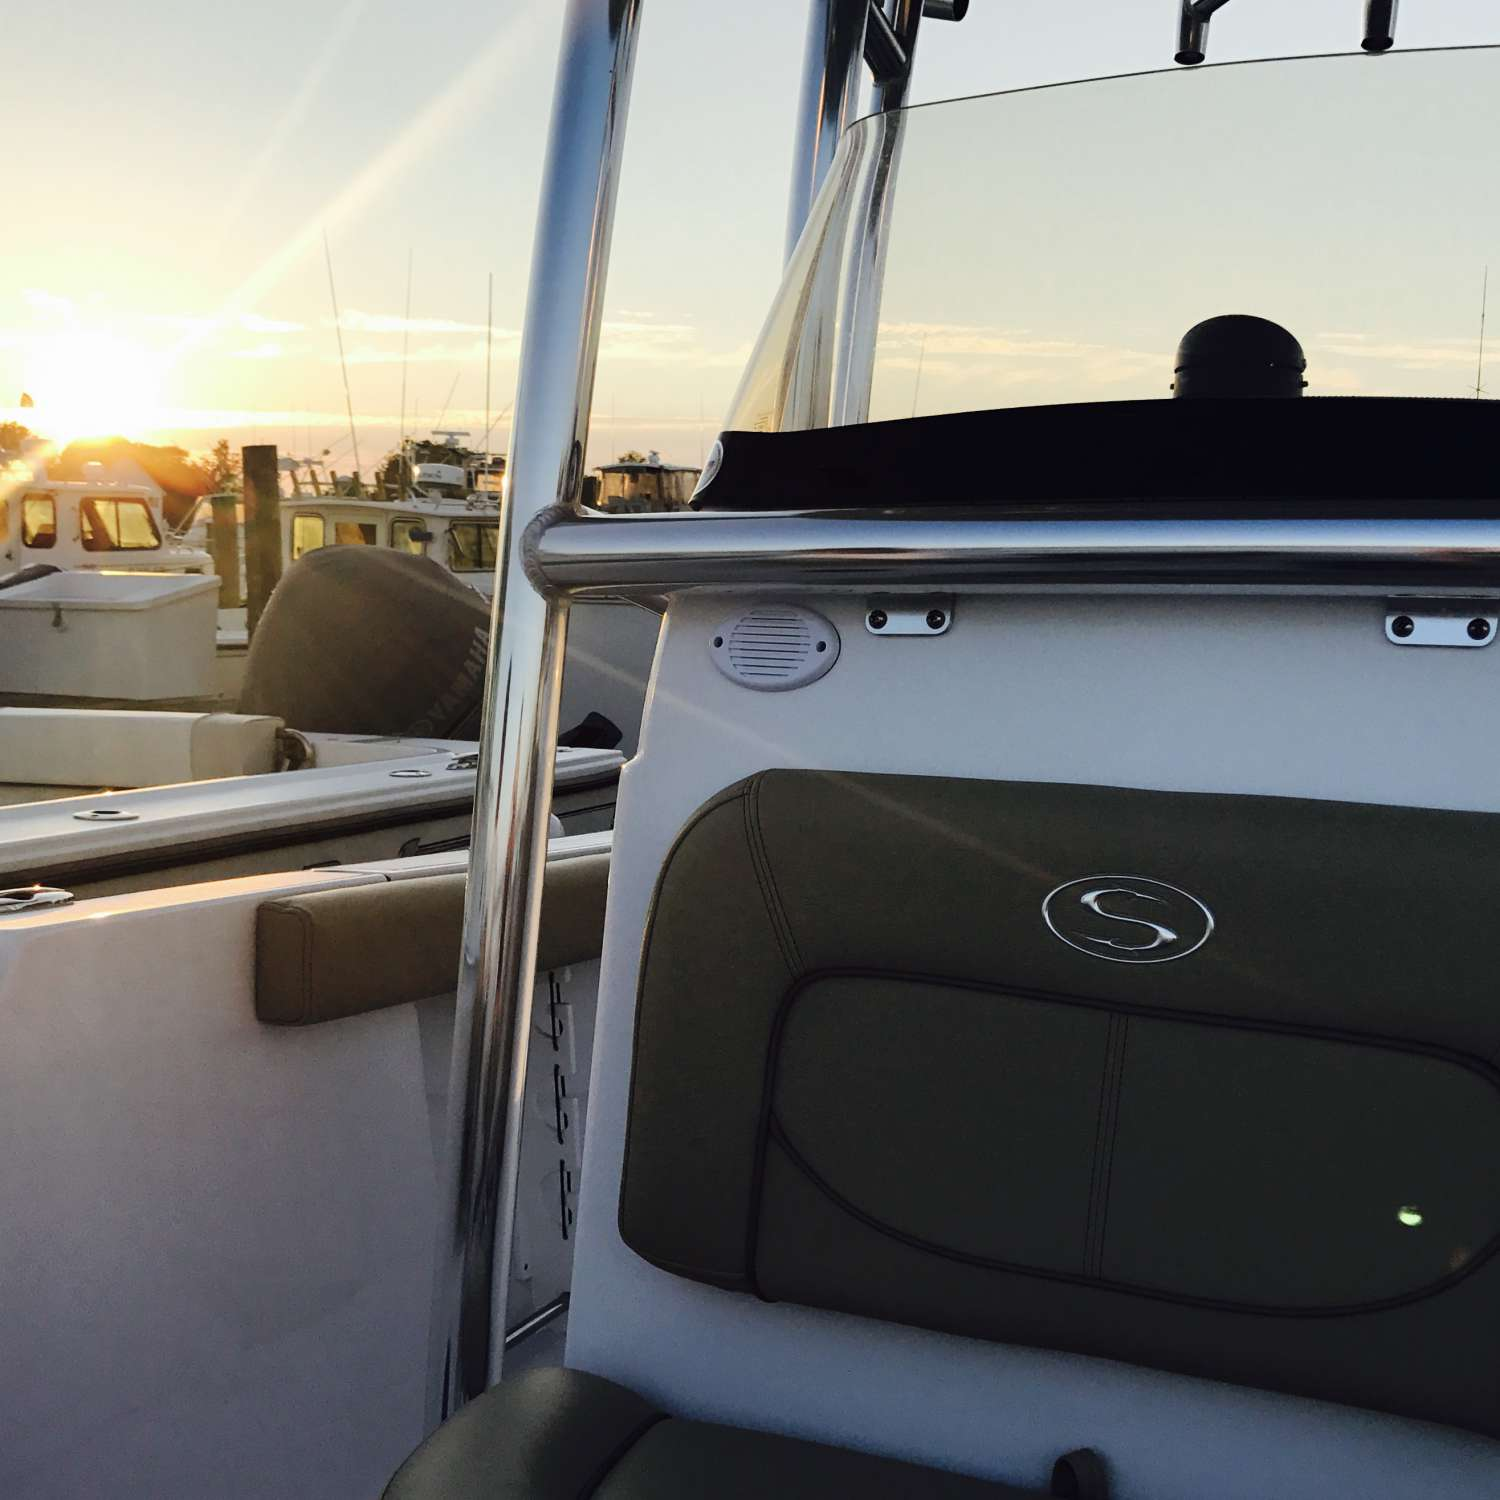 Title: 232 Opn Sunset - On board their Sportsman Open 232 Center Console - Location: Waterford, Connecticut. Participating in the Photo Contest #SportsmanJuly2017